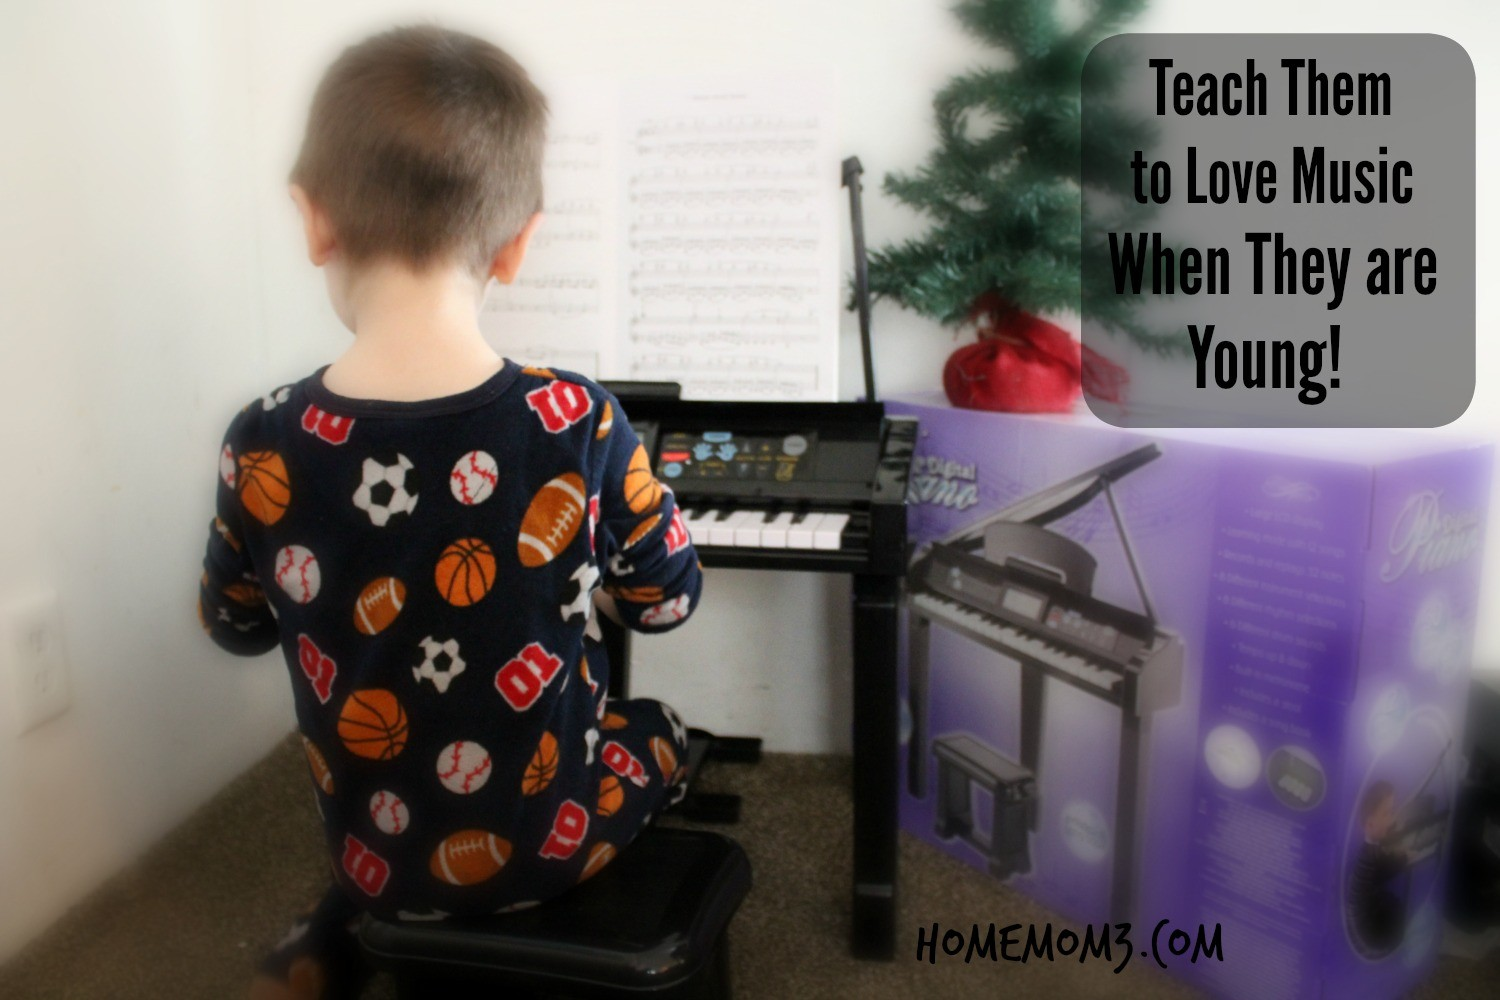 Baby Grand Digital Piano for Young Ones